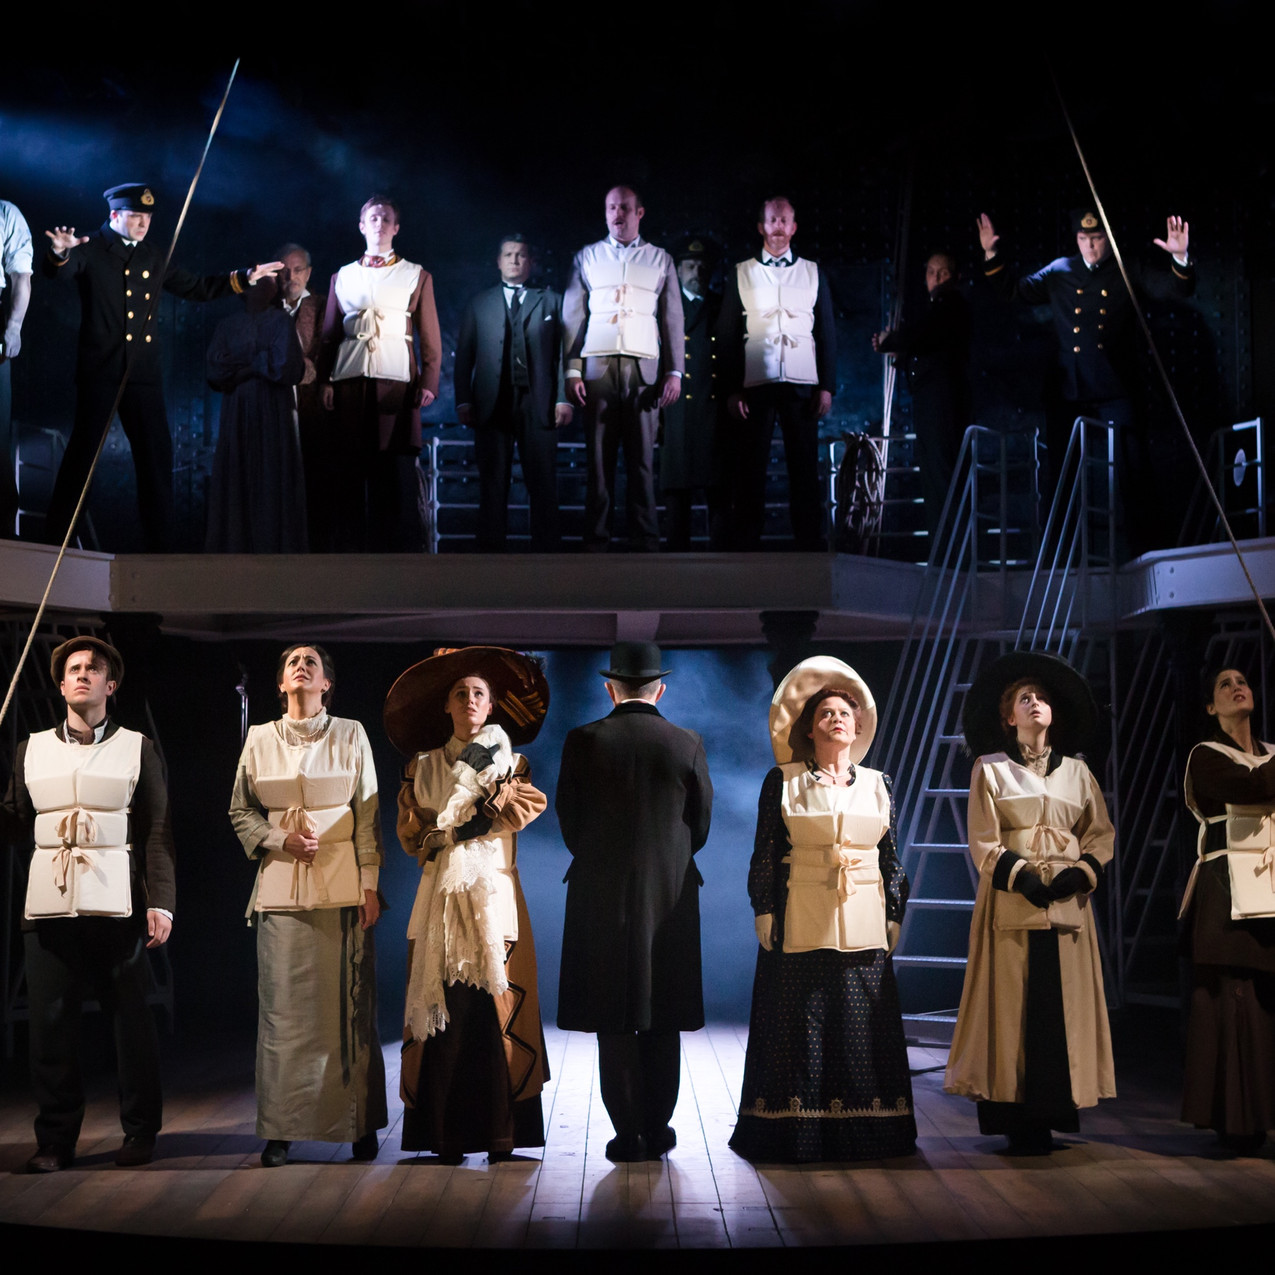 Charing Cross Theatre Cast - Photo by Scott Rylander (3)